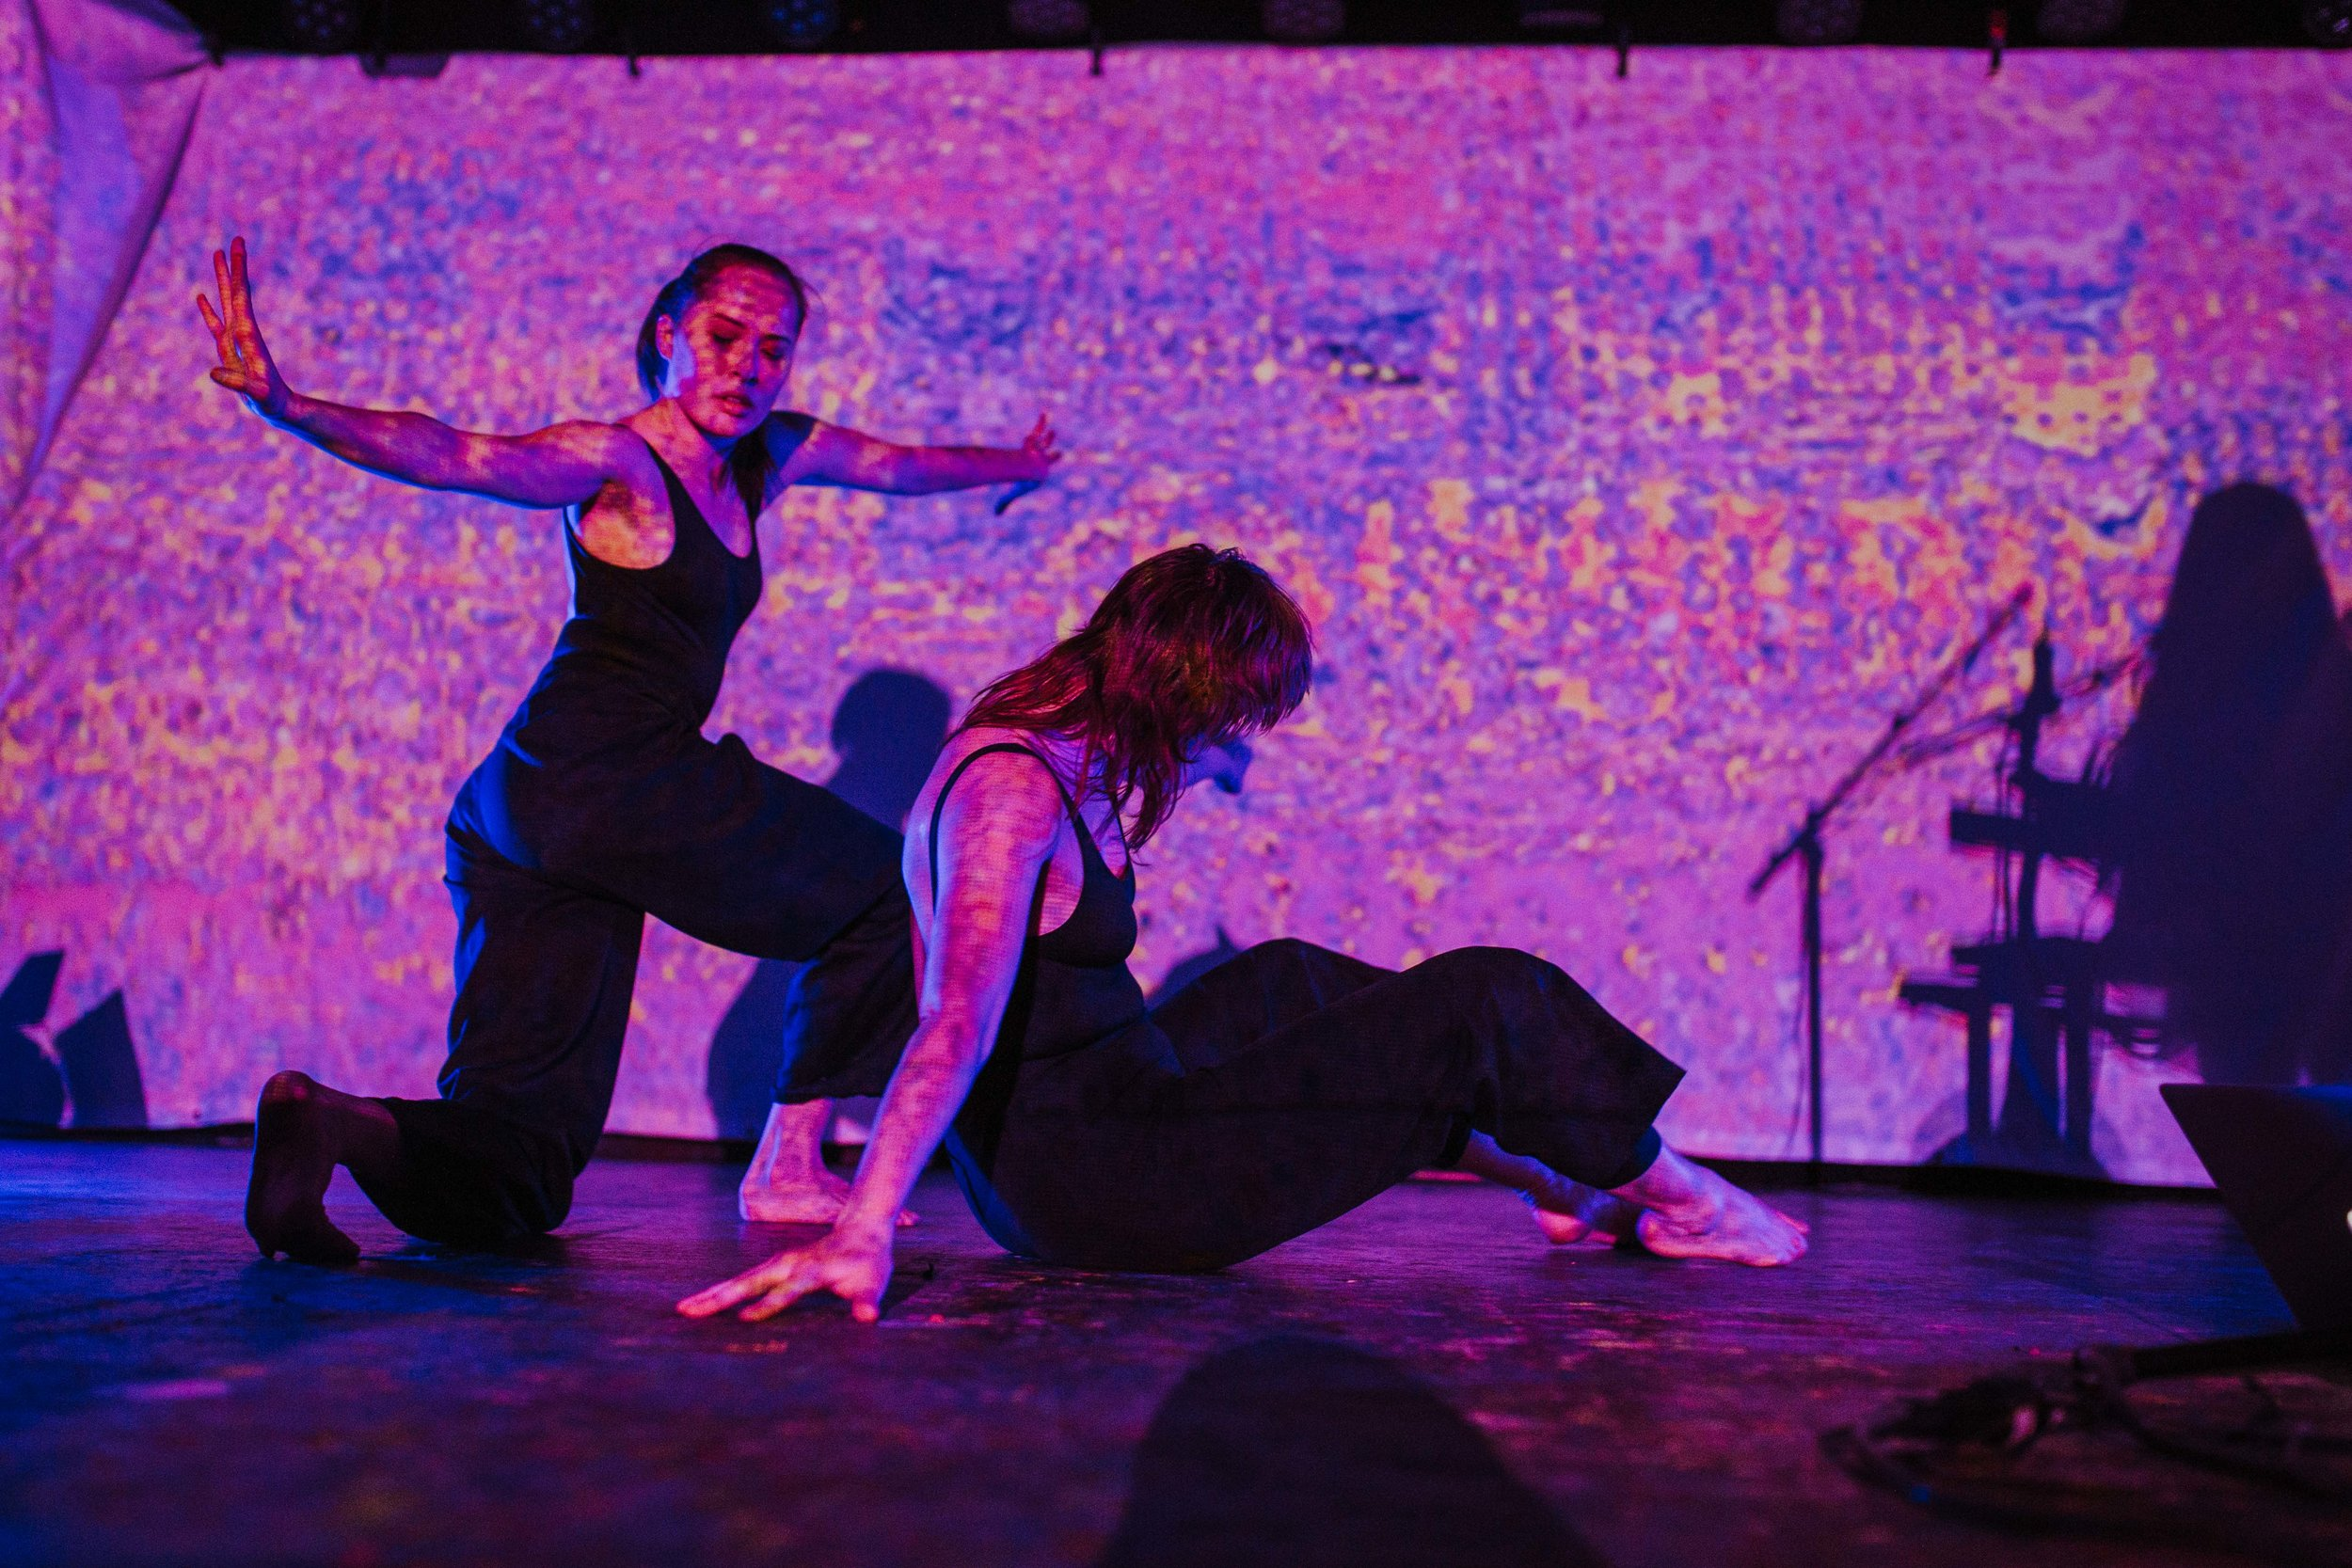 RAYANNAH - With Dancers Jillian Groening and Emily Solstice. Projections by Stephanie Kuse, lights by Miguel Fortier. Part of Jazz Winnipeg's NuSound Series. Photos by Travis Ross.